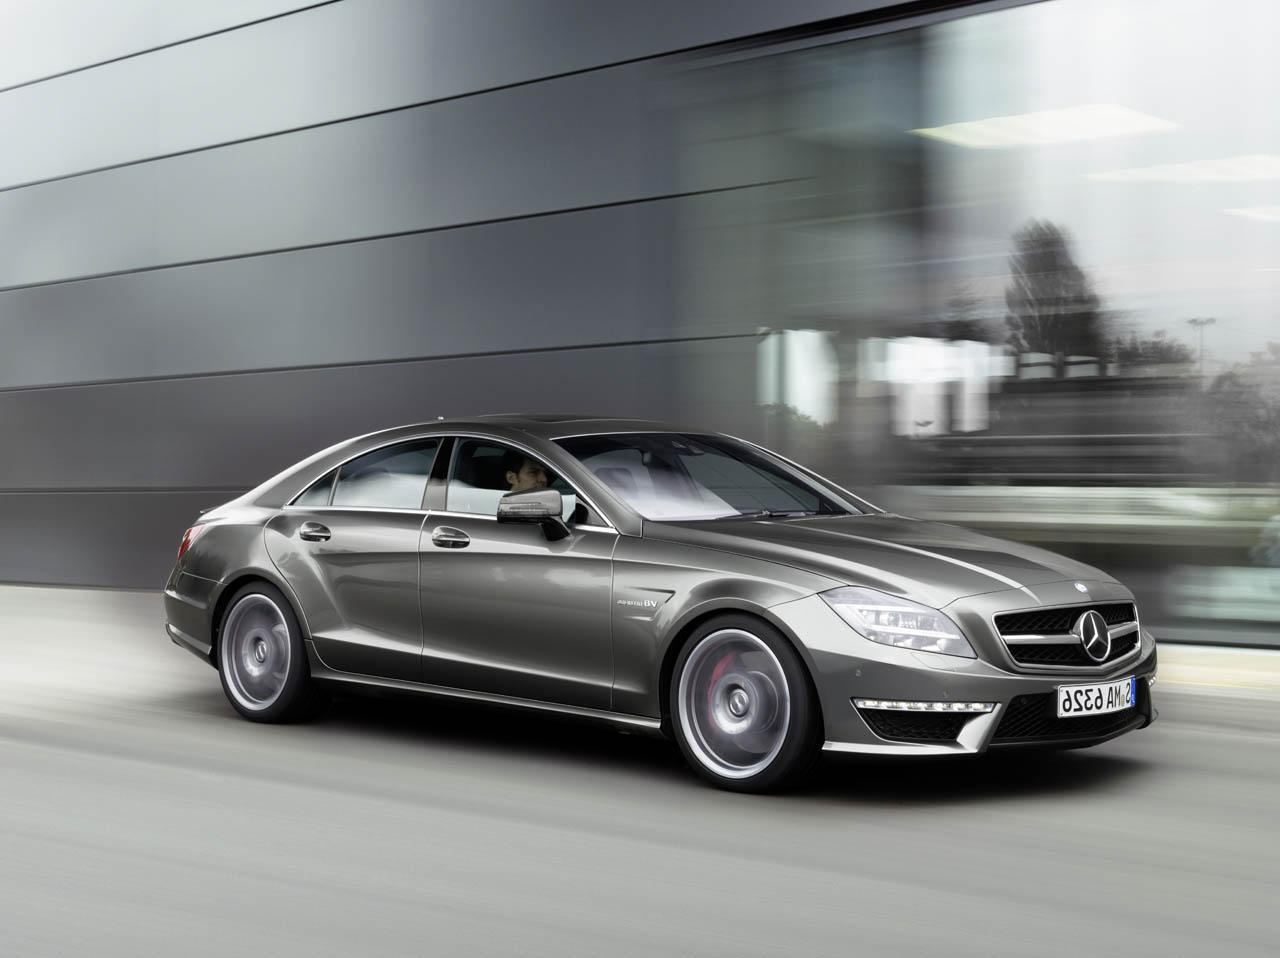 2012 mb cls63 amg. Hell yeah!